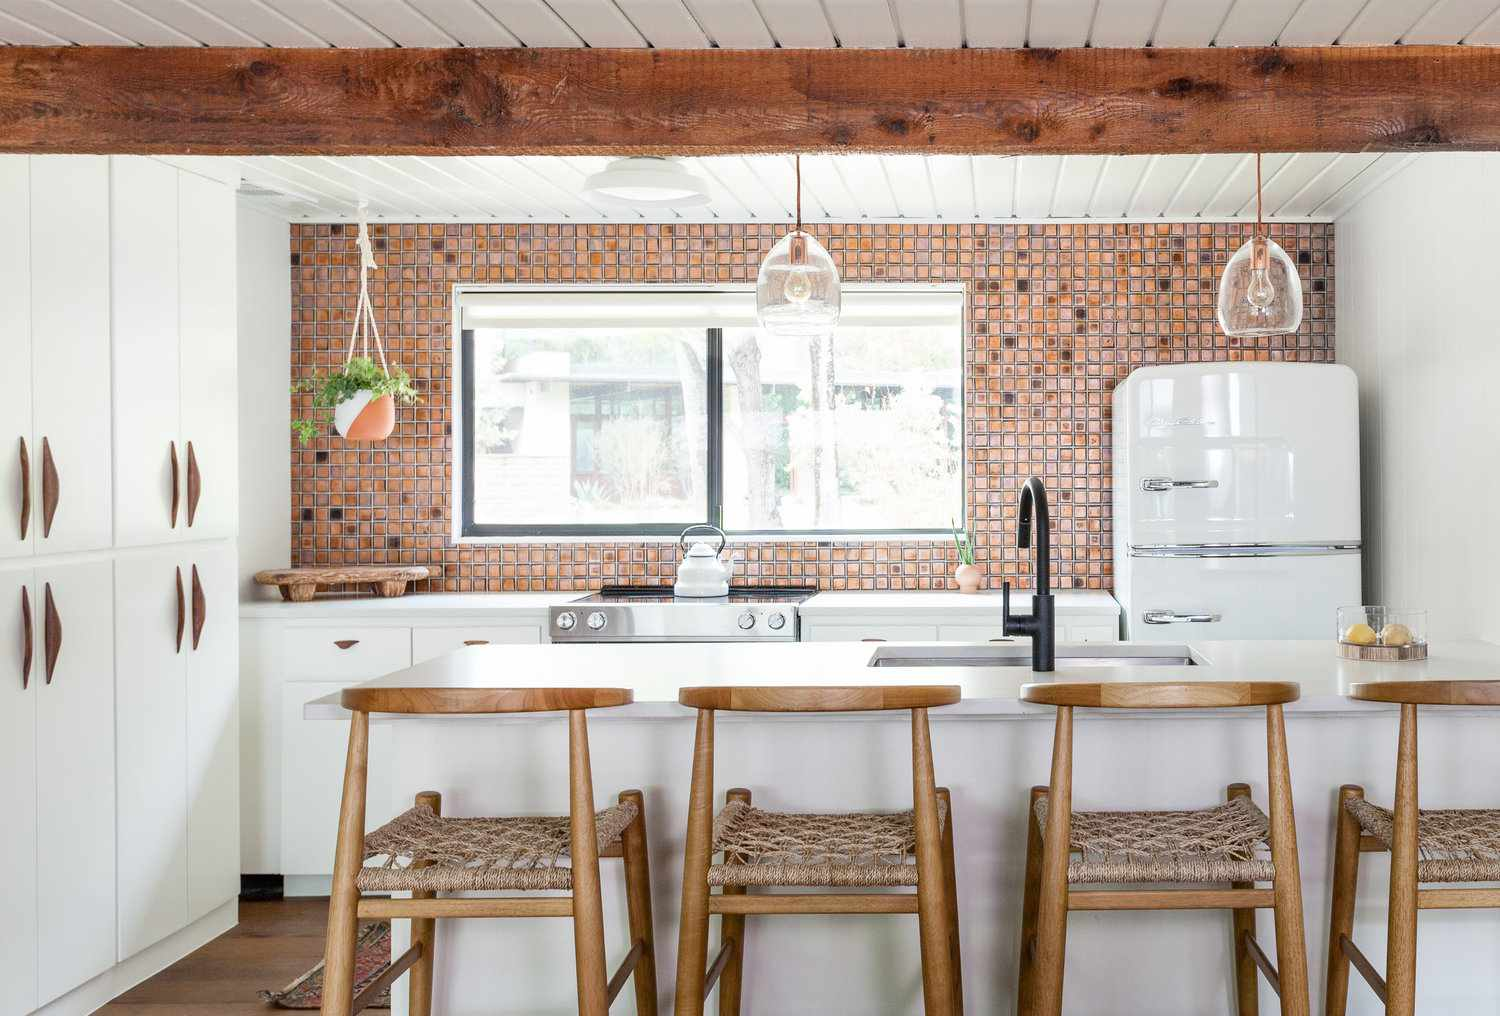 A kitchen backsplash lined with a varied array of small copper tiles